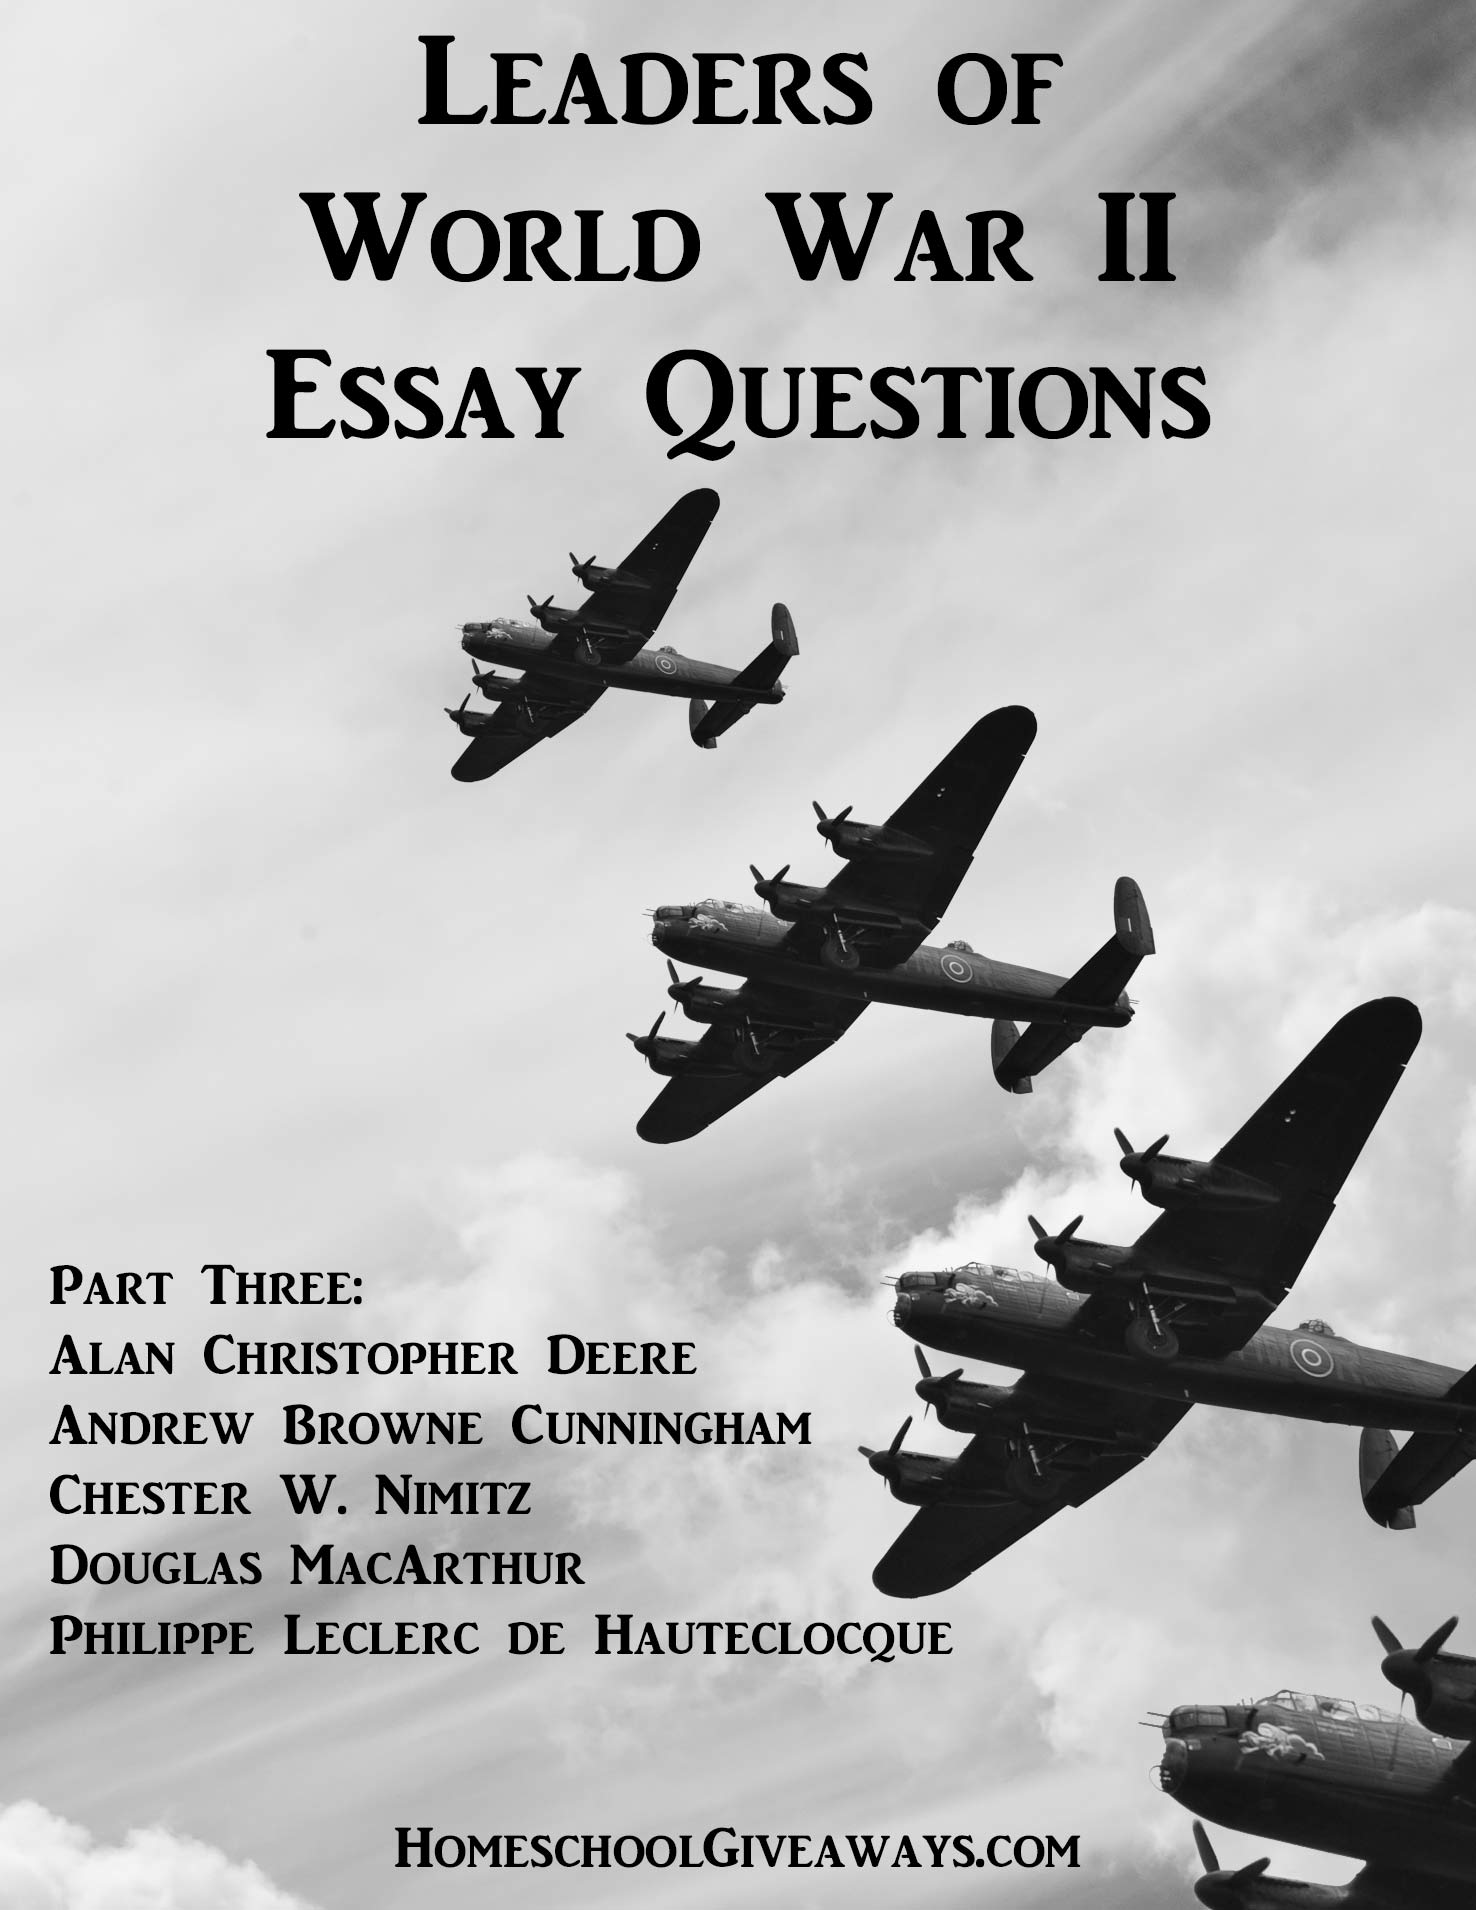 Leaders of World War II Essay Questions, Part Three